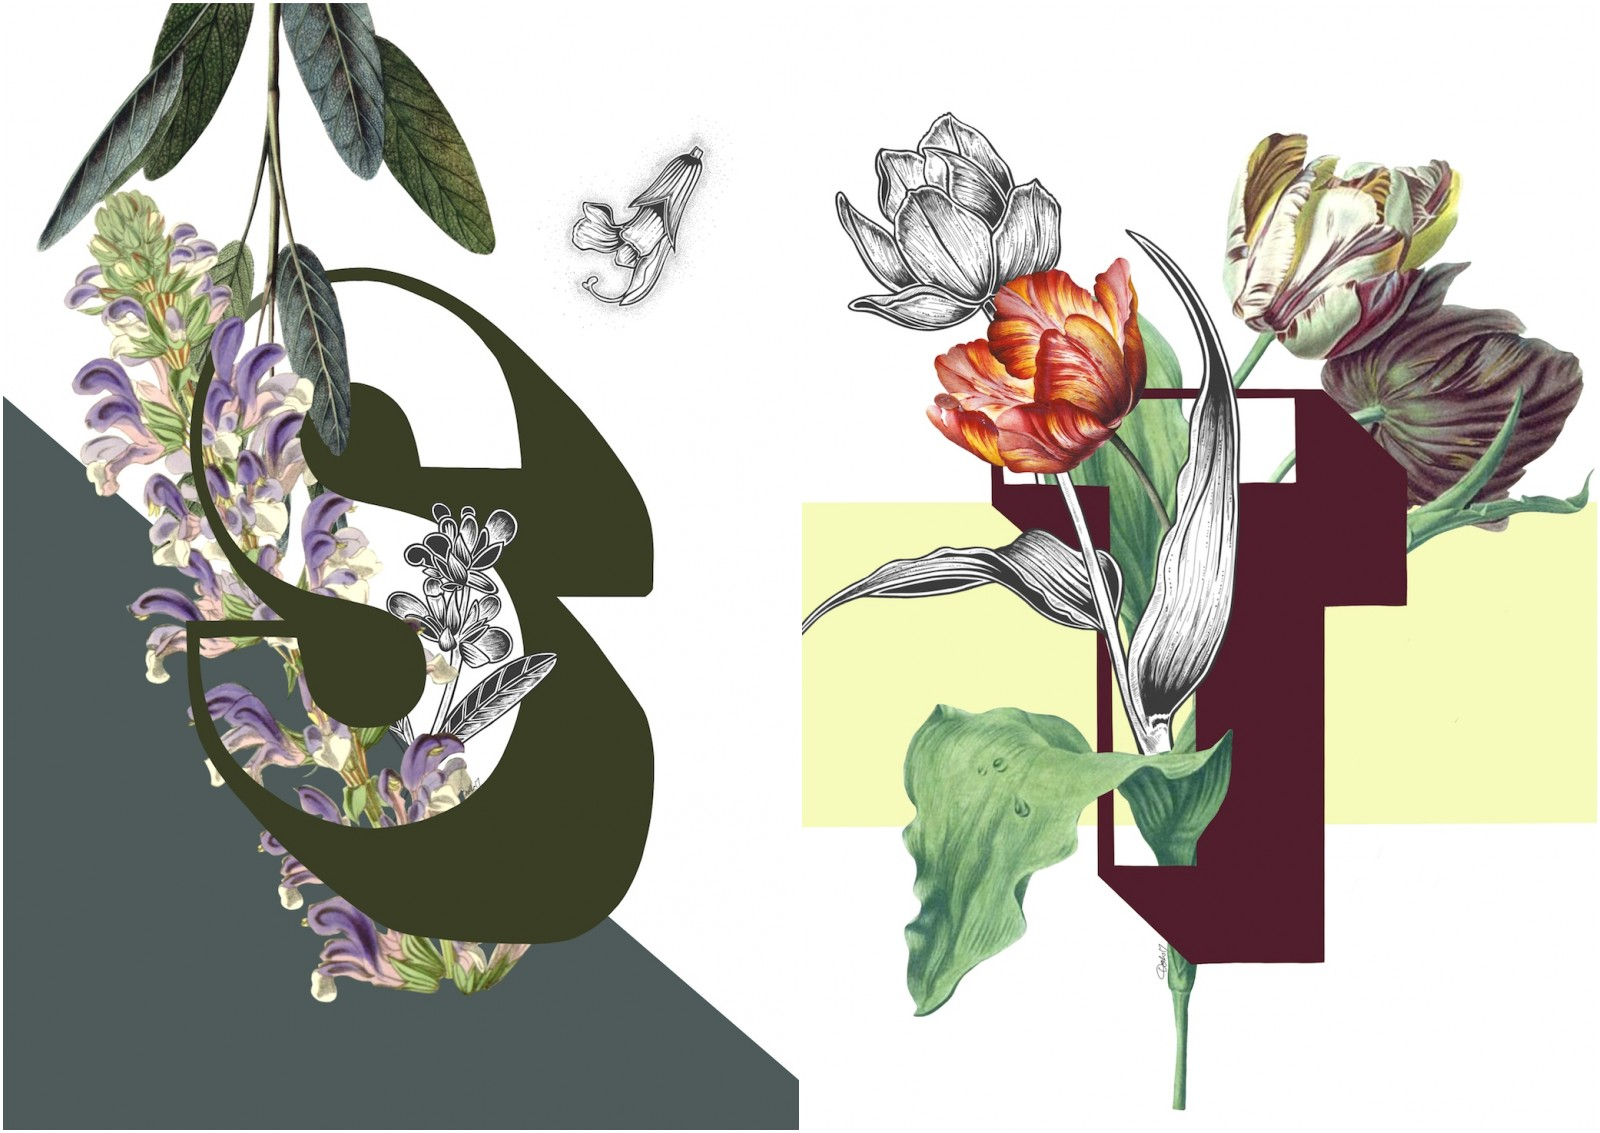 Botanical Alphabet prints by Dodo Flugge.